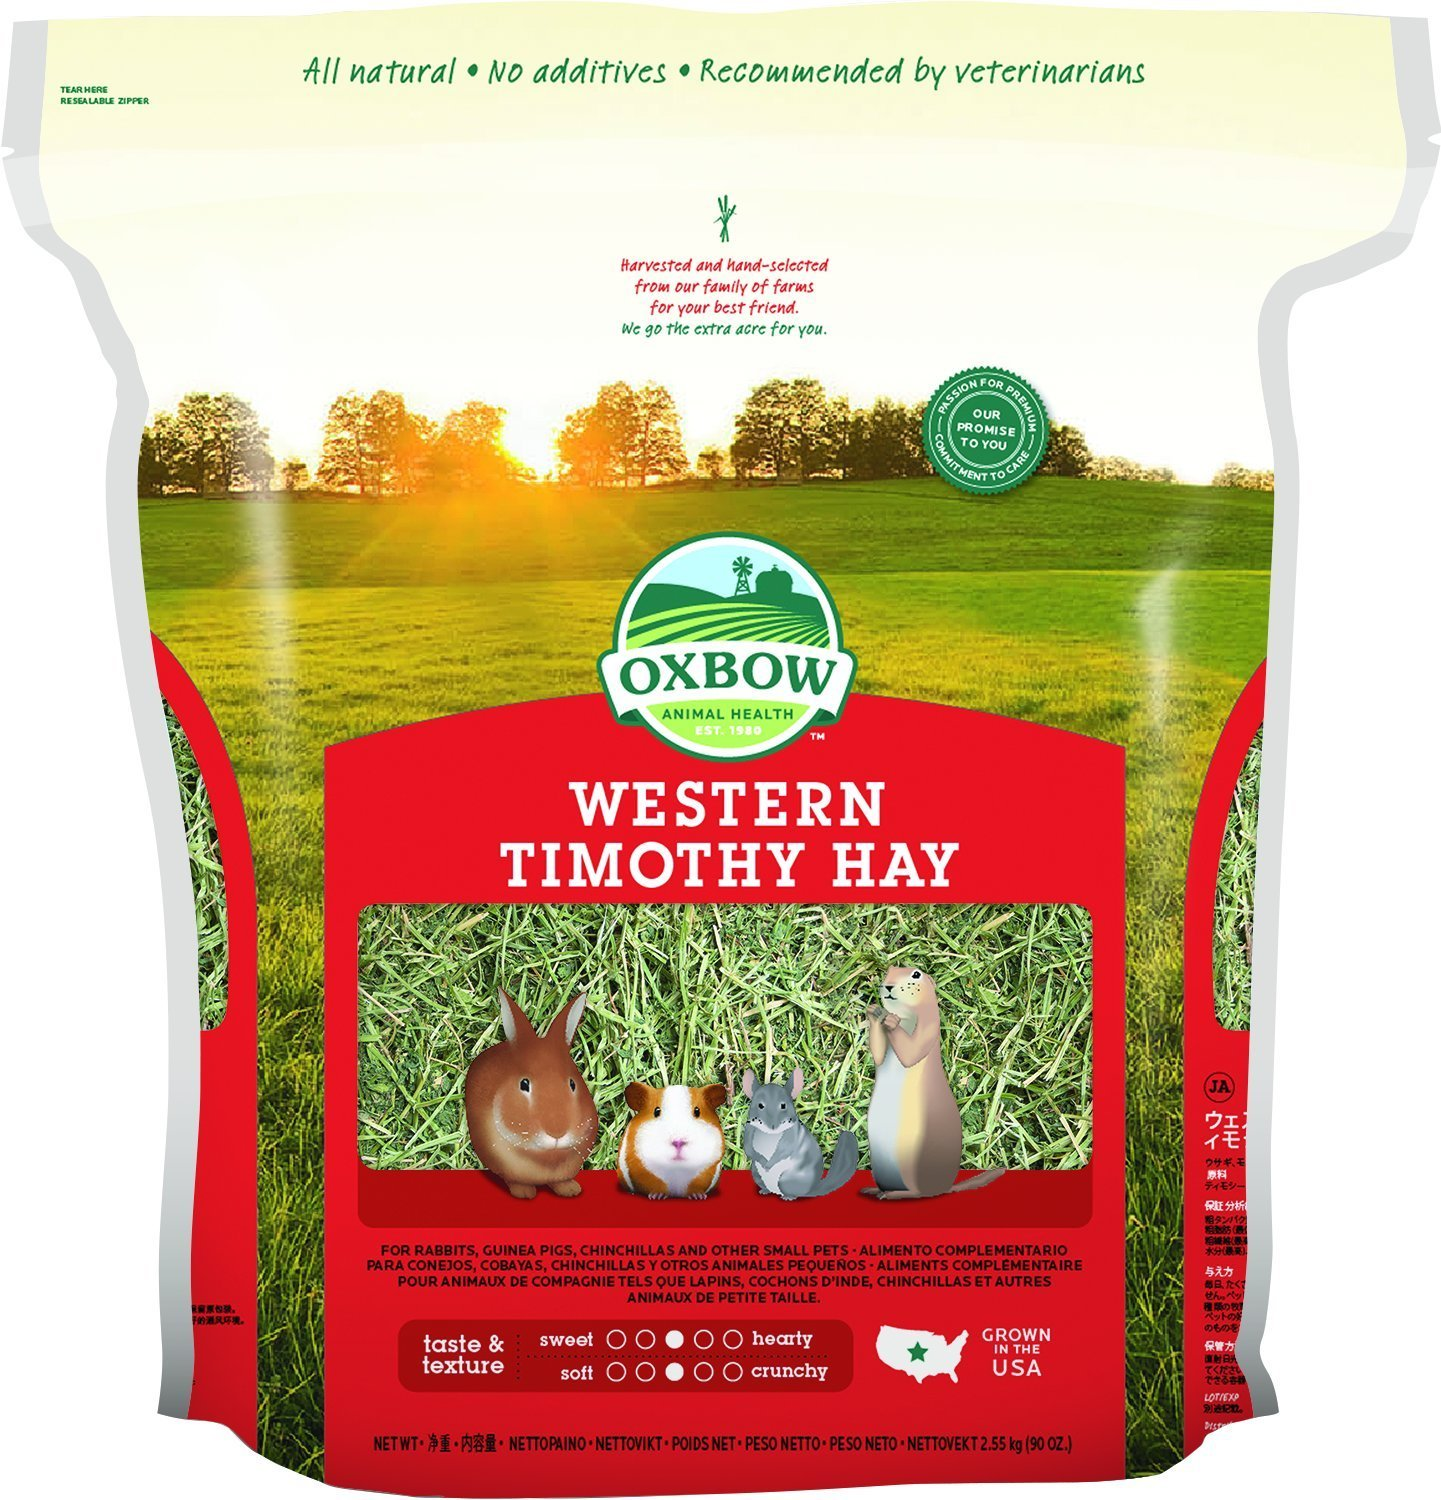 Oxbow Western Timothy Hay for Pets, 90 oz.